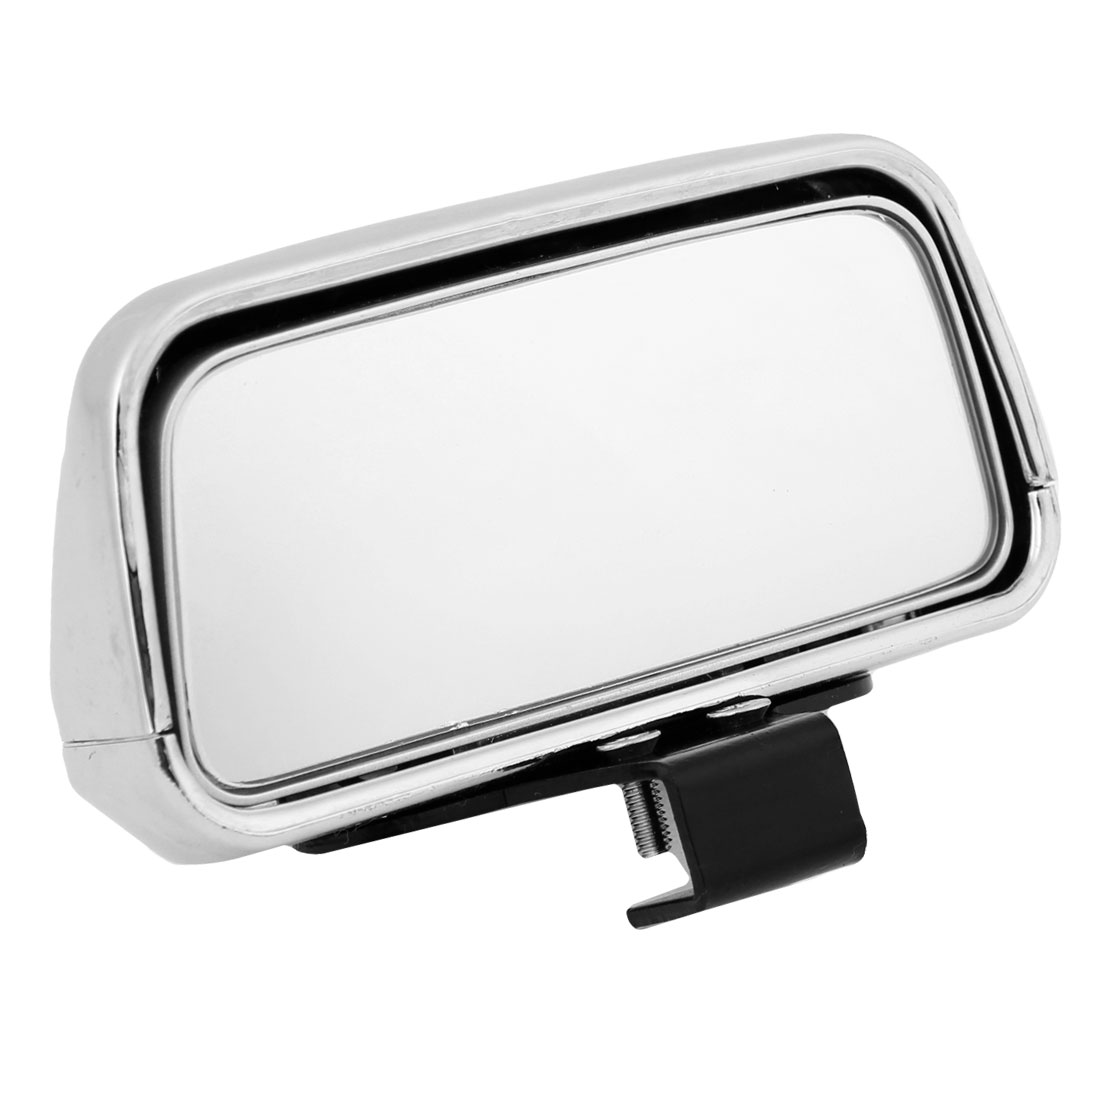 Silver Tone Car Wide Angle Convex Side Rear View Blind Spot Auxiliary Mirror